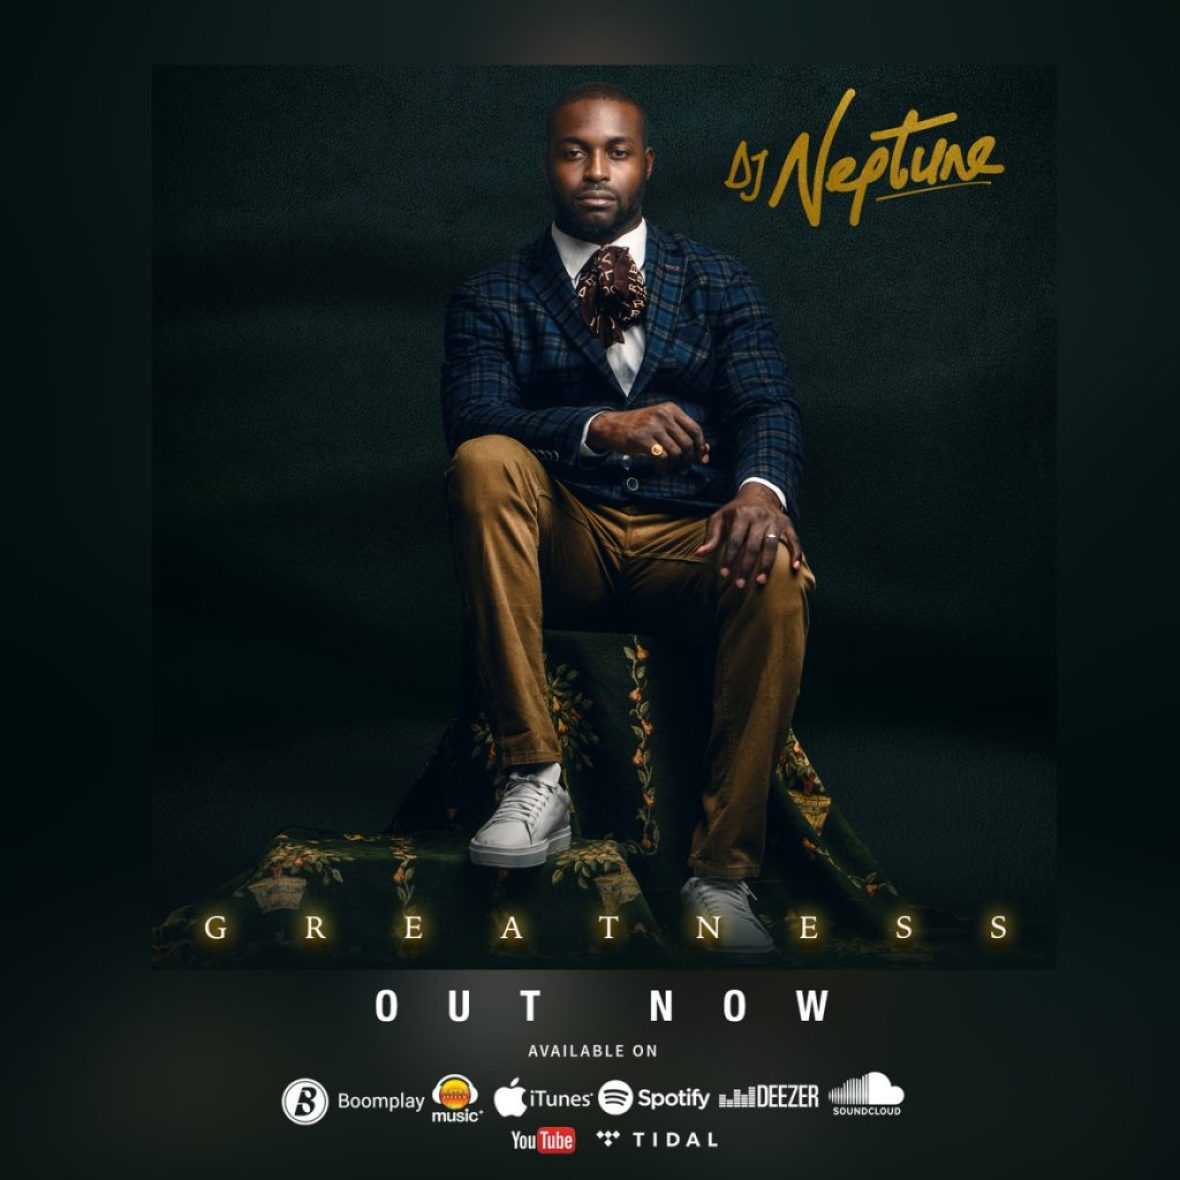 DJ Neptune Releases his debut album Greatness